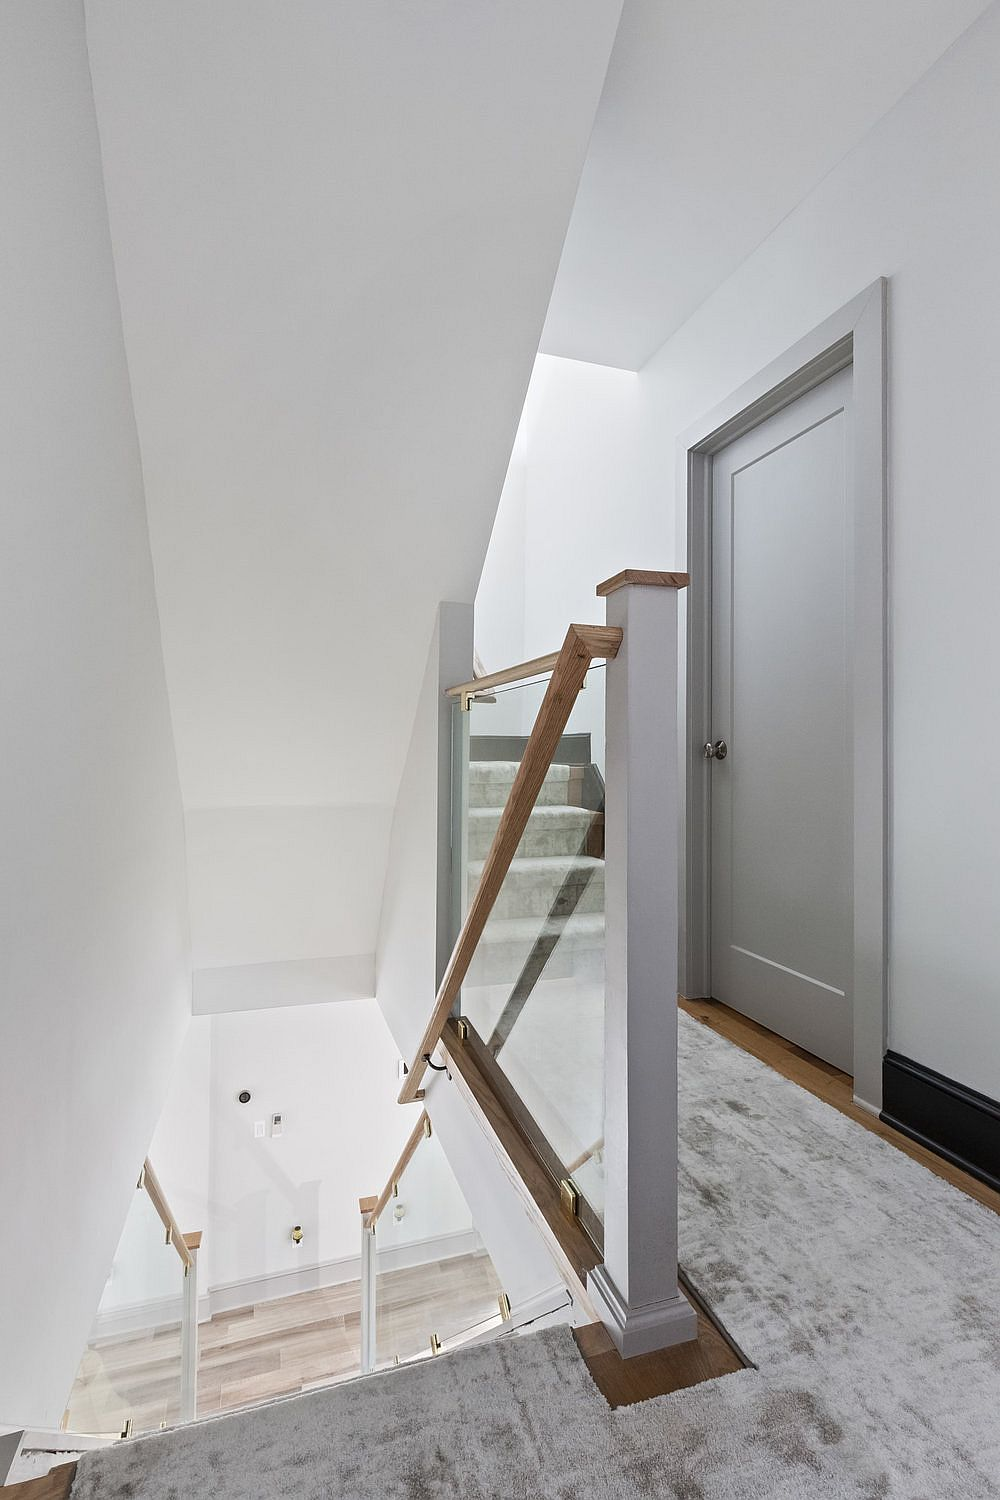 Staircase-inside-the-renovated-NY-townhouse-with-natural-light-illuminating-the-space-10207